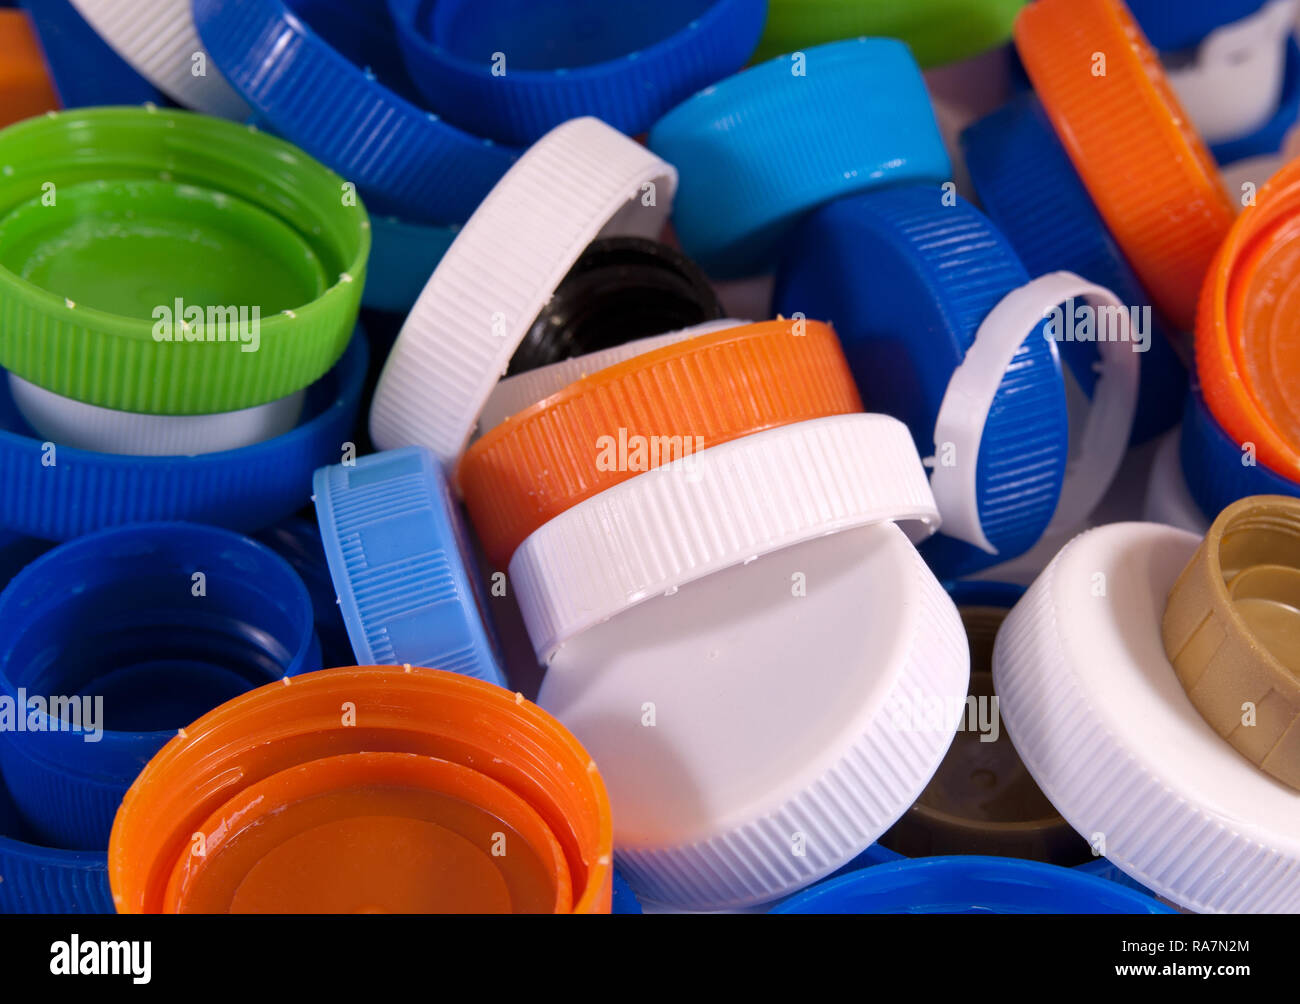 Plastic bottle caps as a background. Close up image - Stock Image